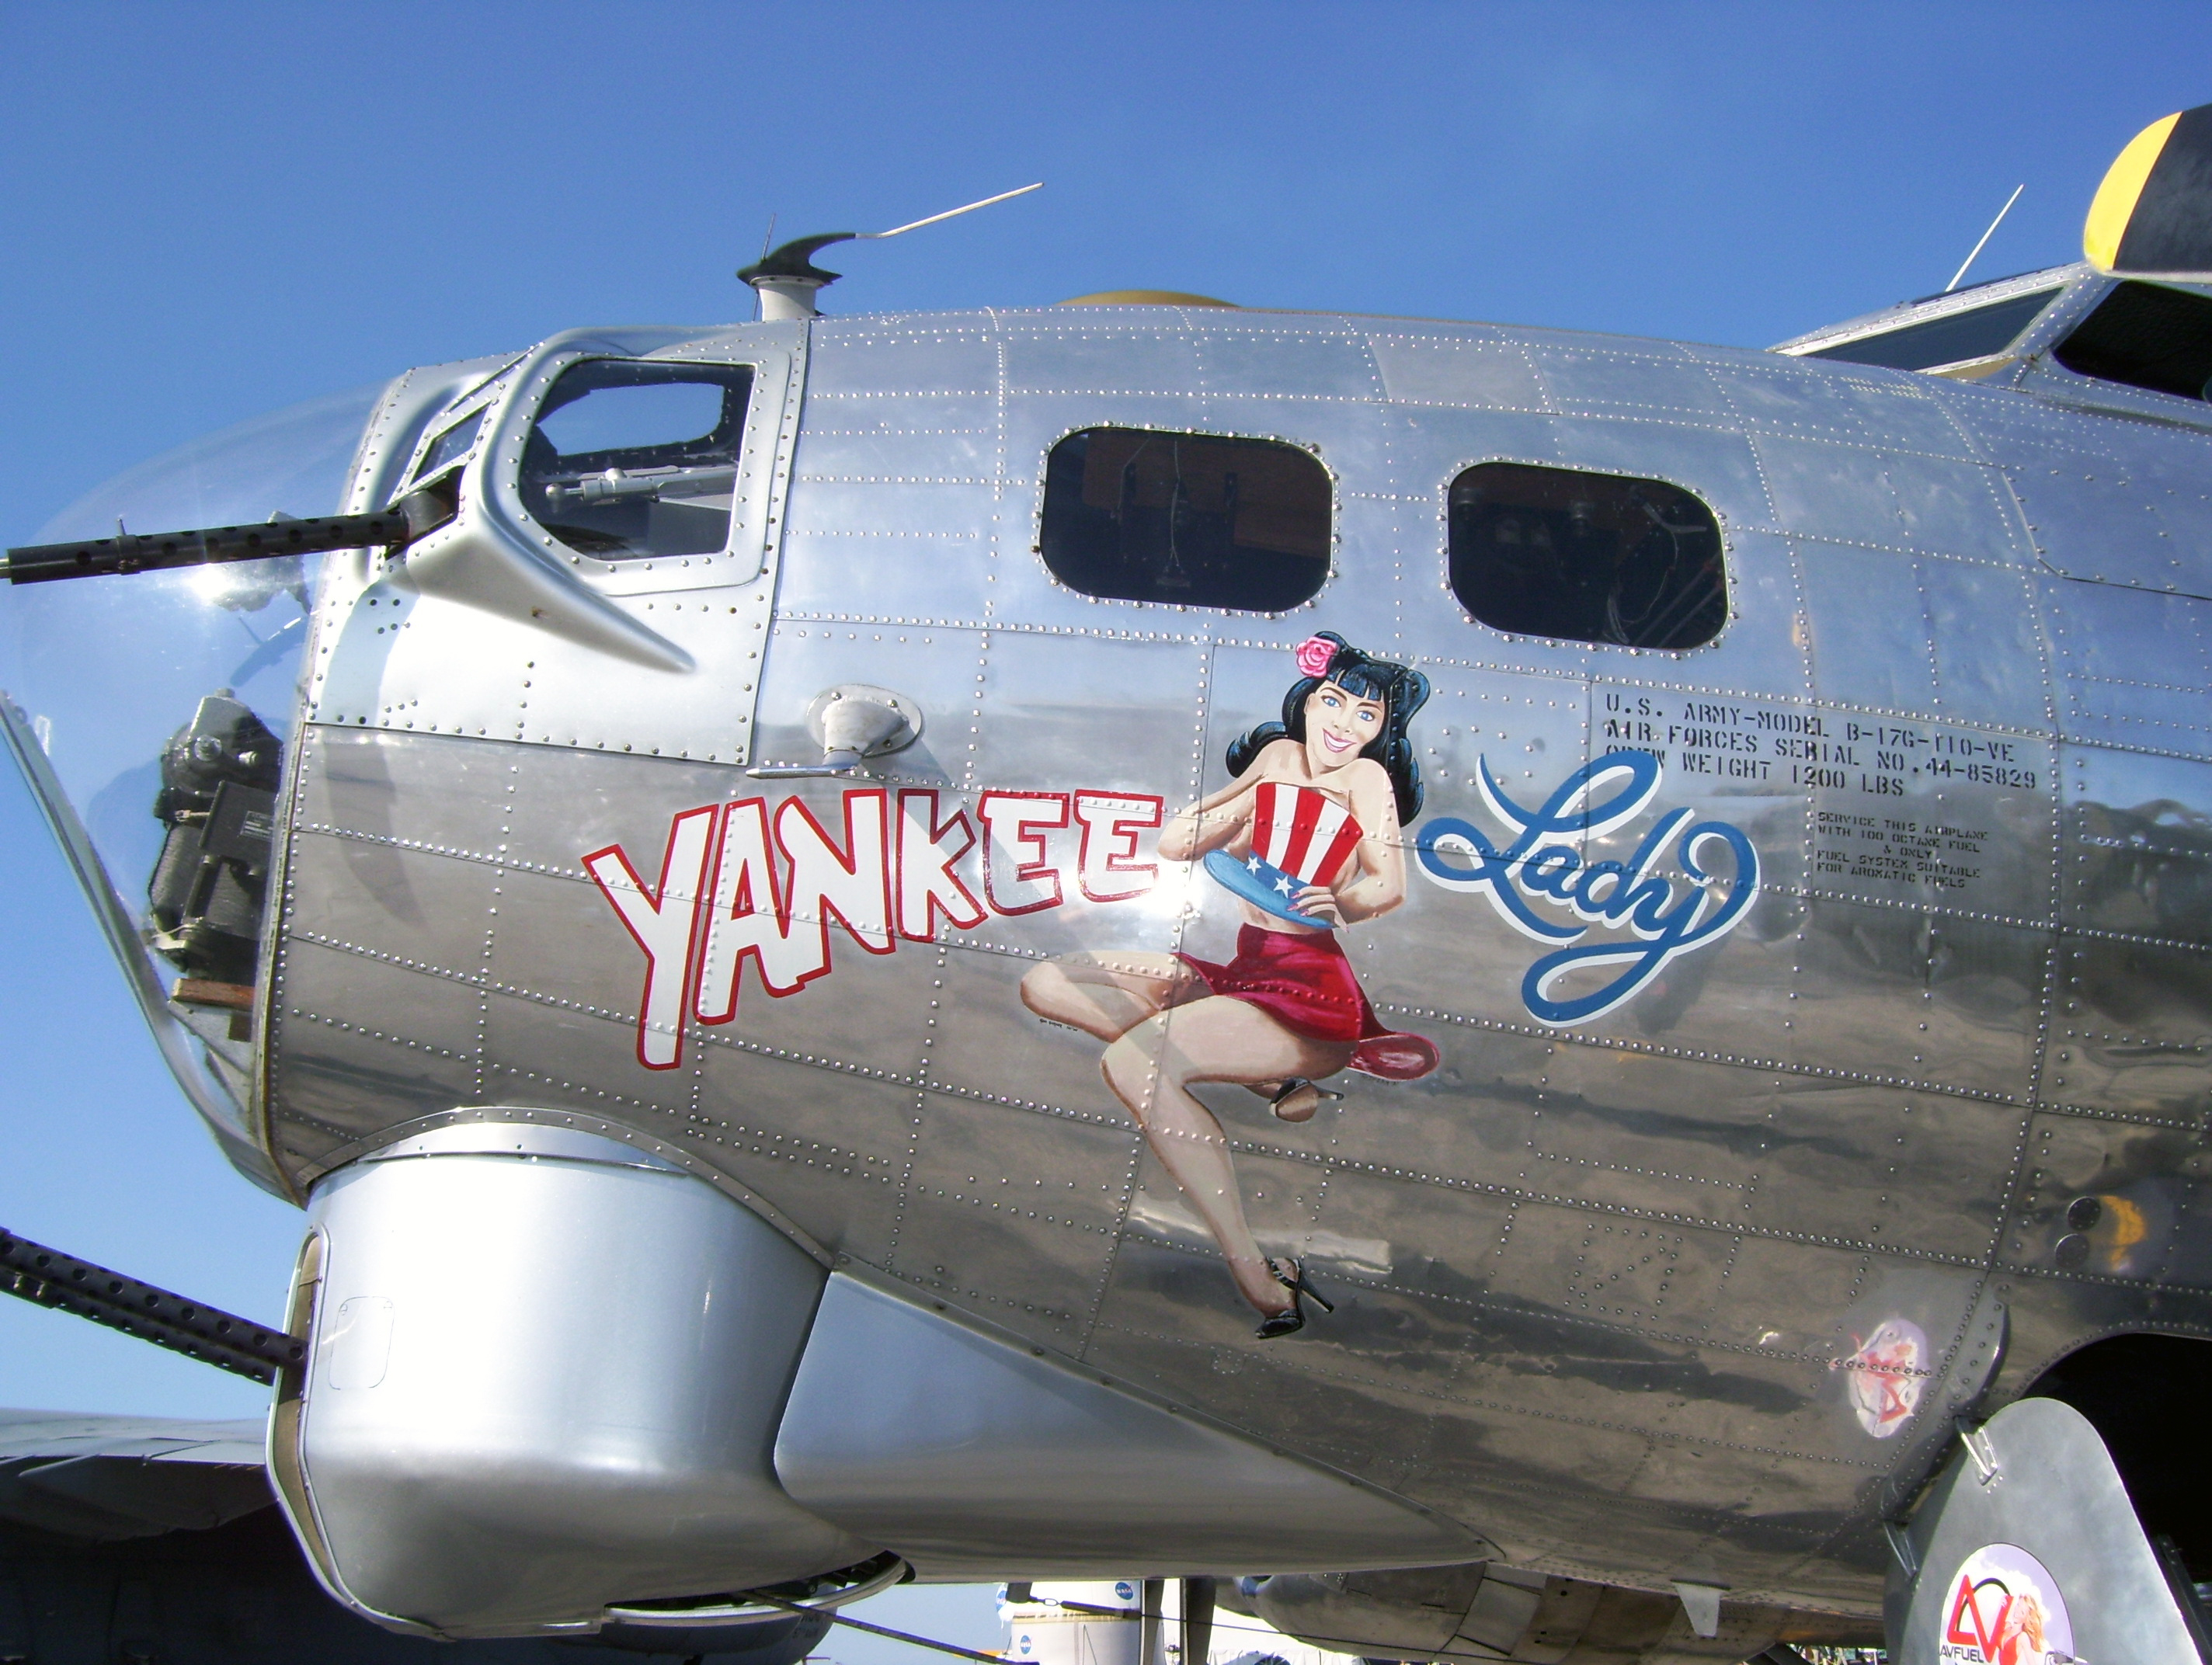 B-17_Yankee_Lady_nose_art.jpg